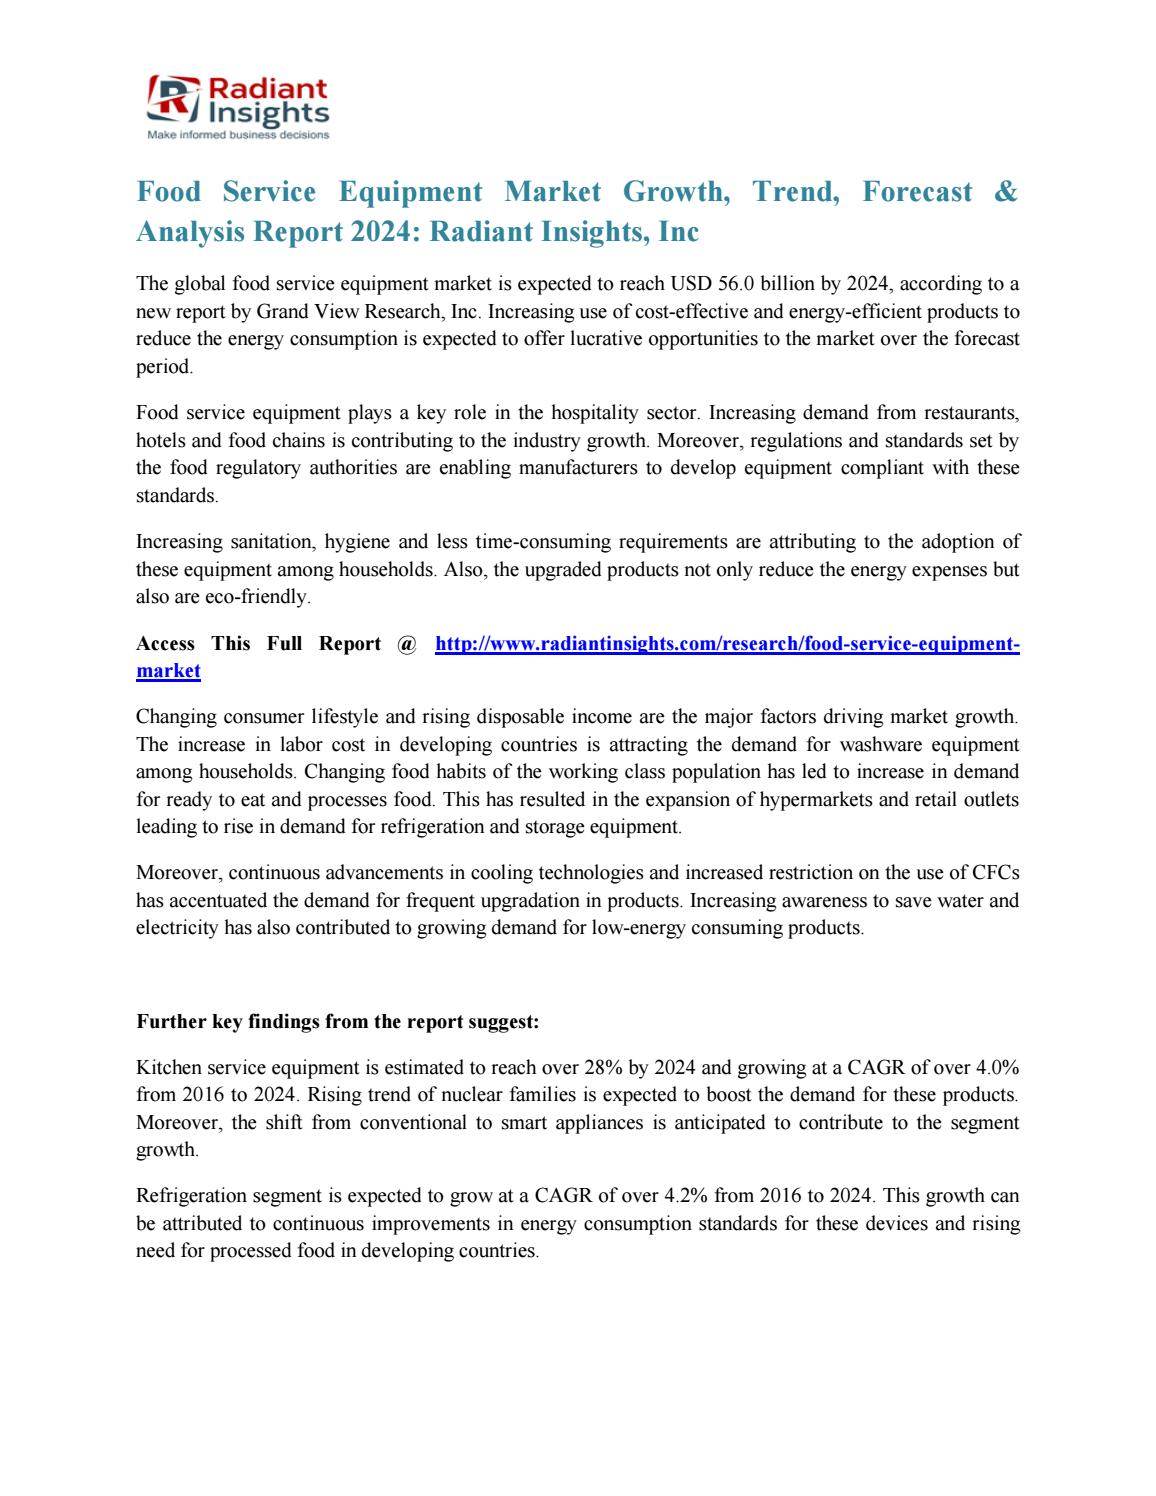 Food service equipment market growth, trend, forecast